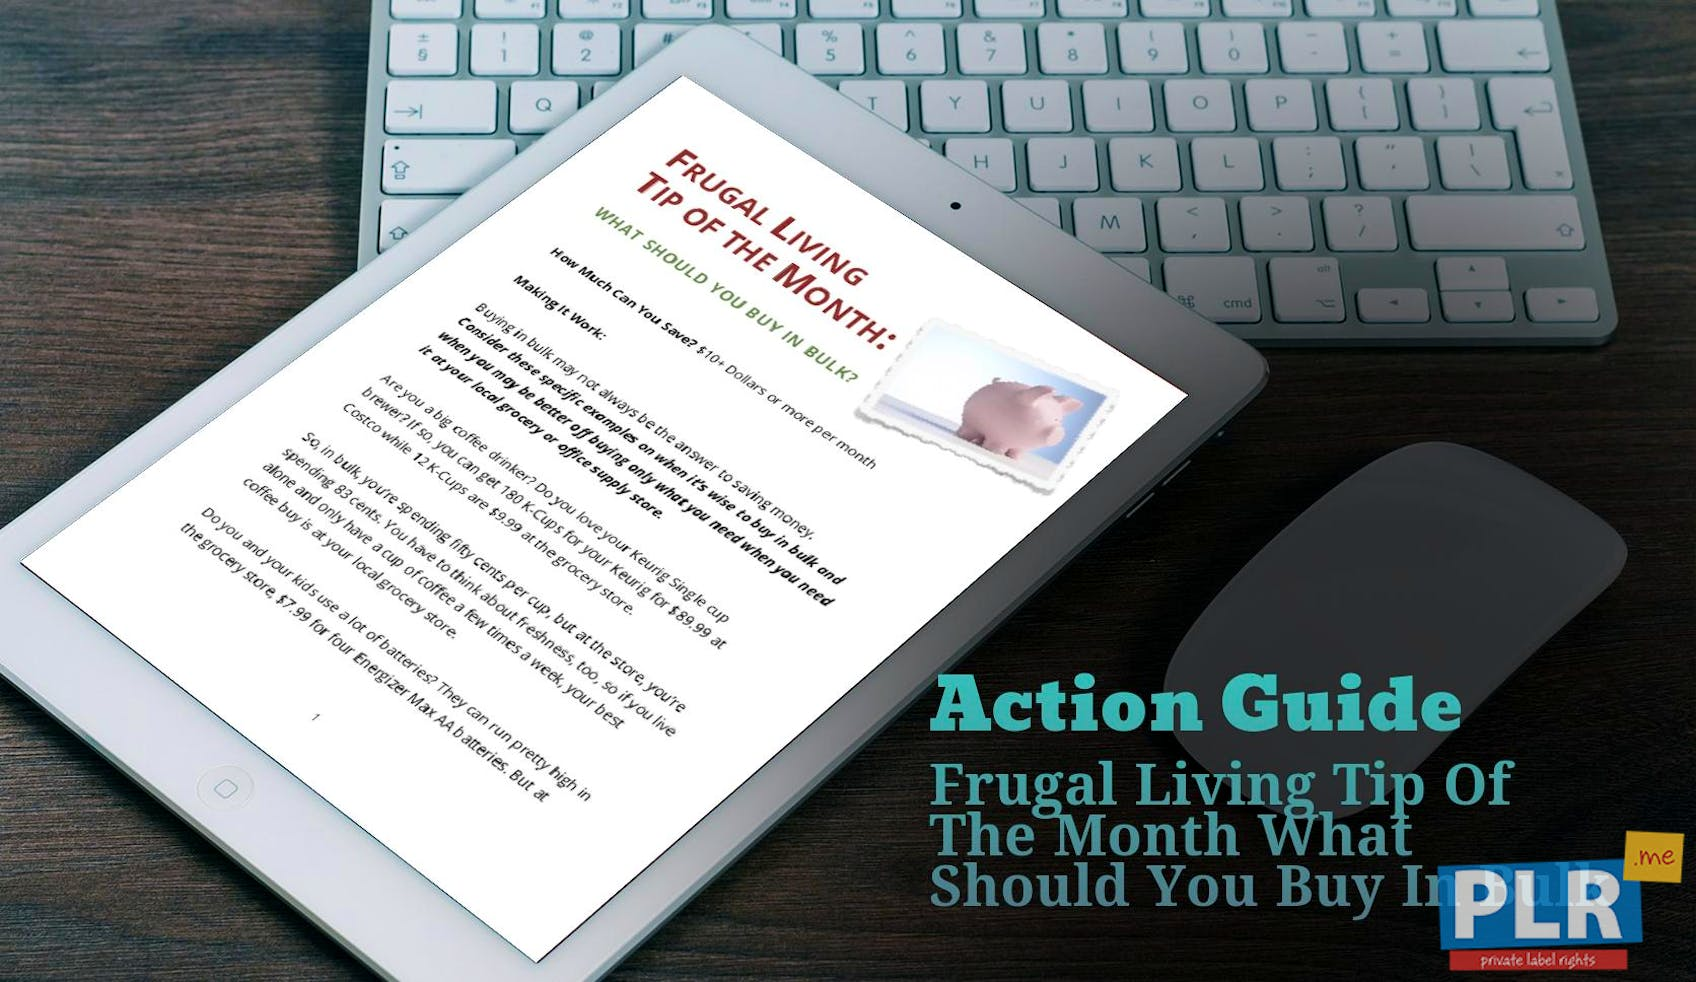 Frugal Living Tip Of The Month What Should You Buy In Bulk